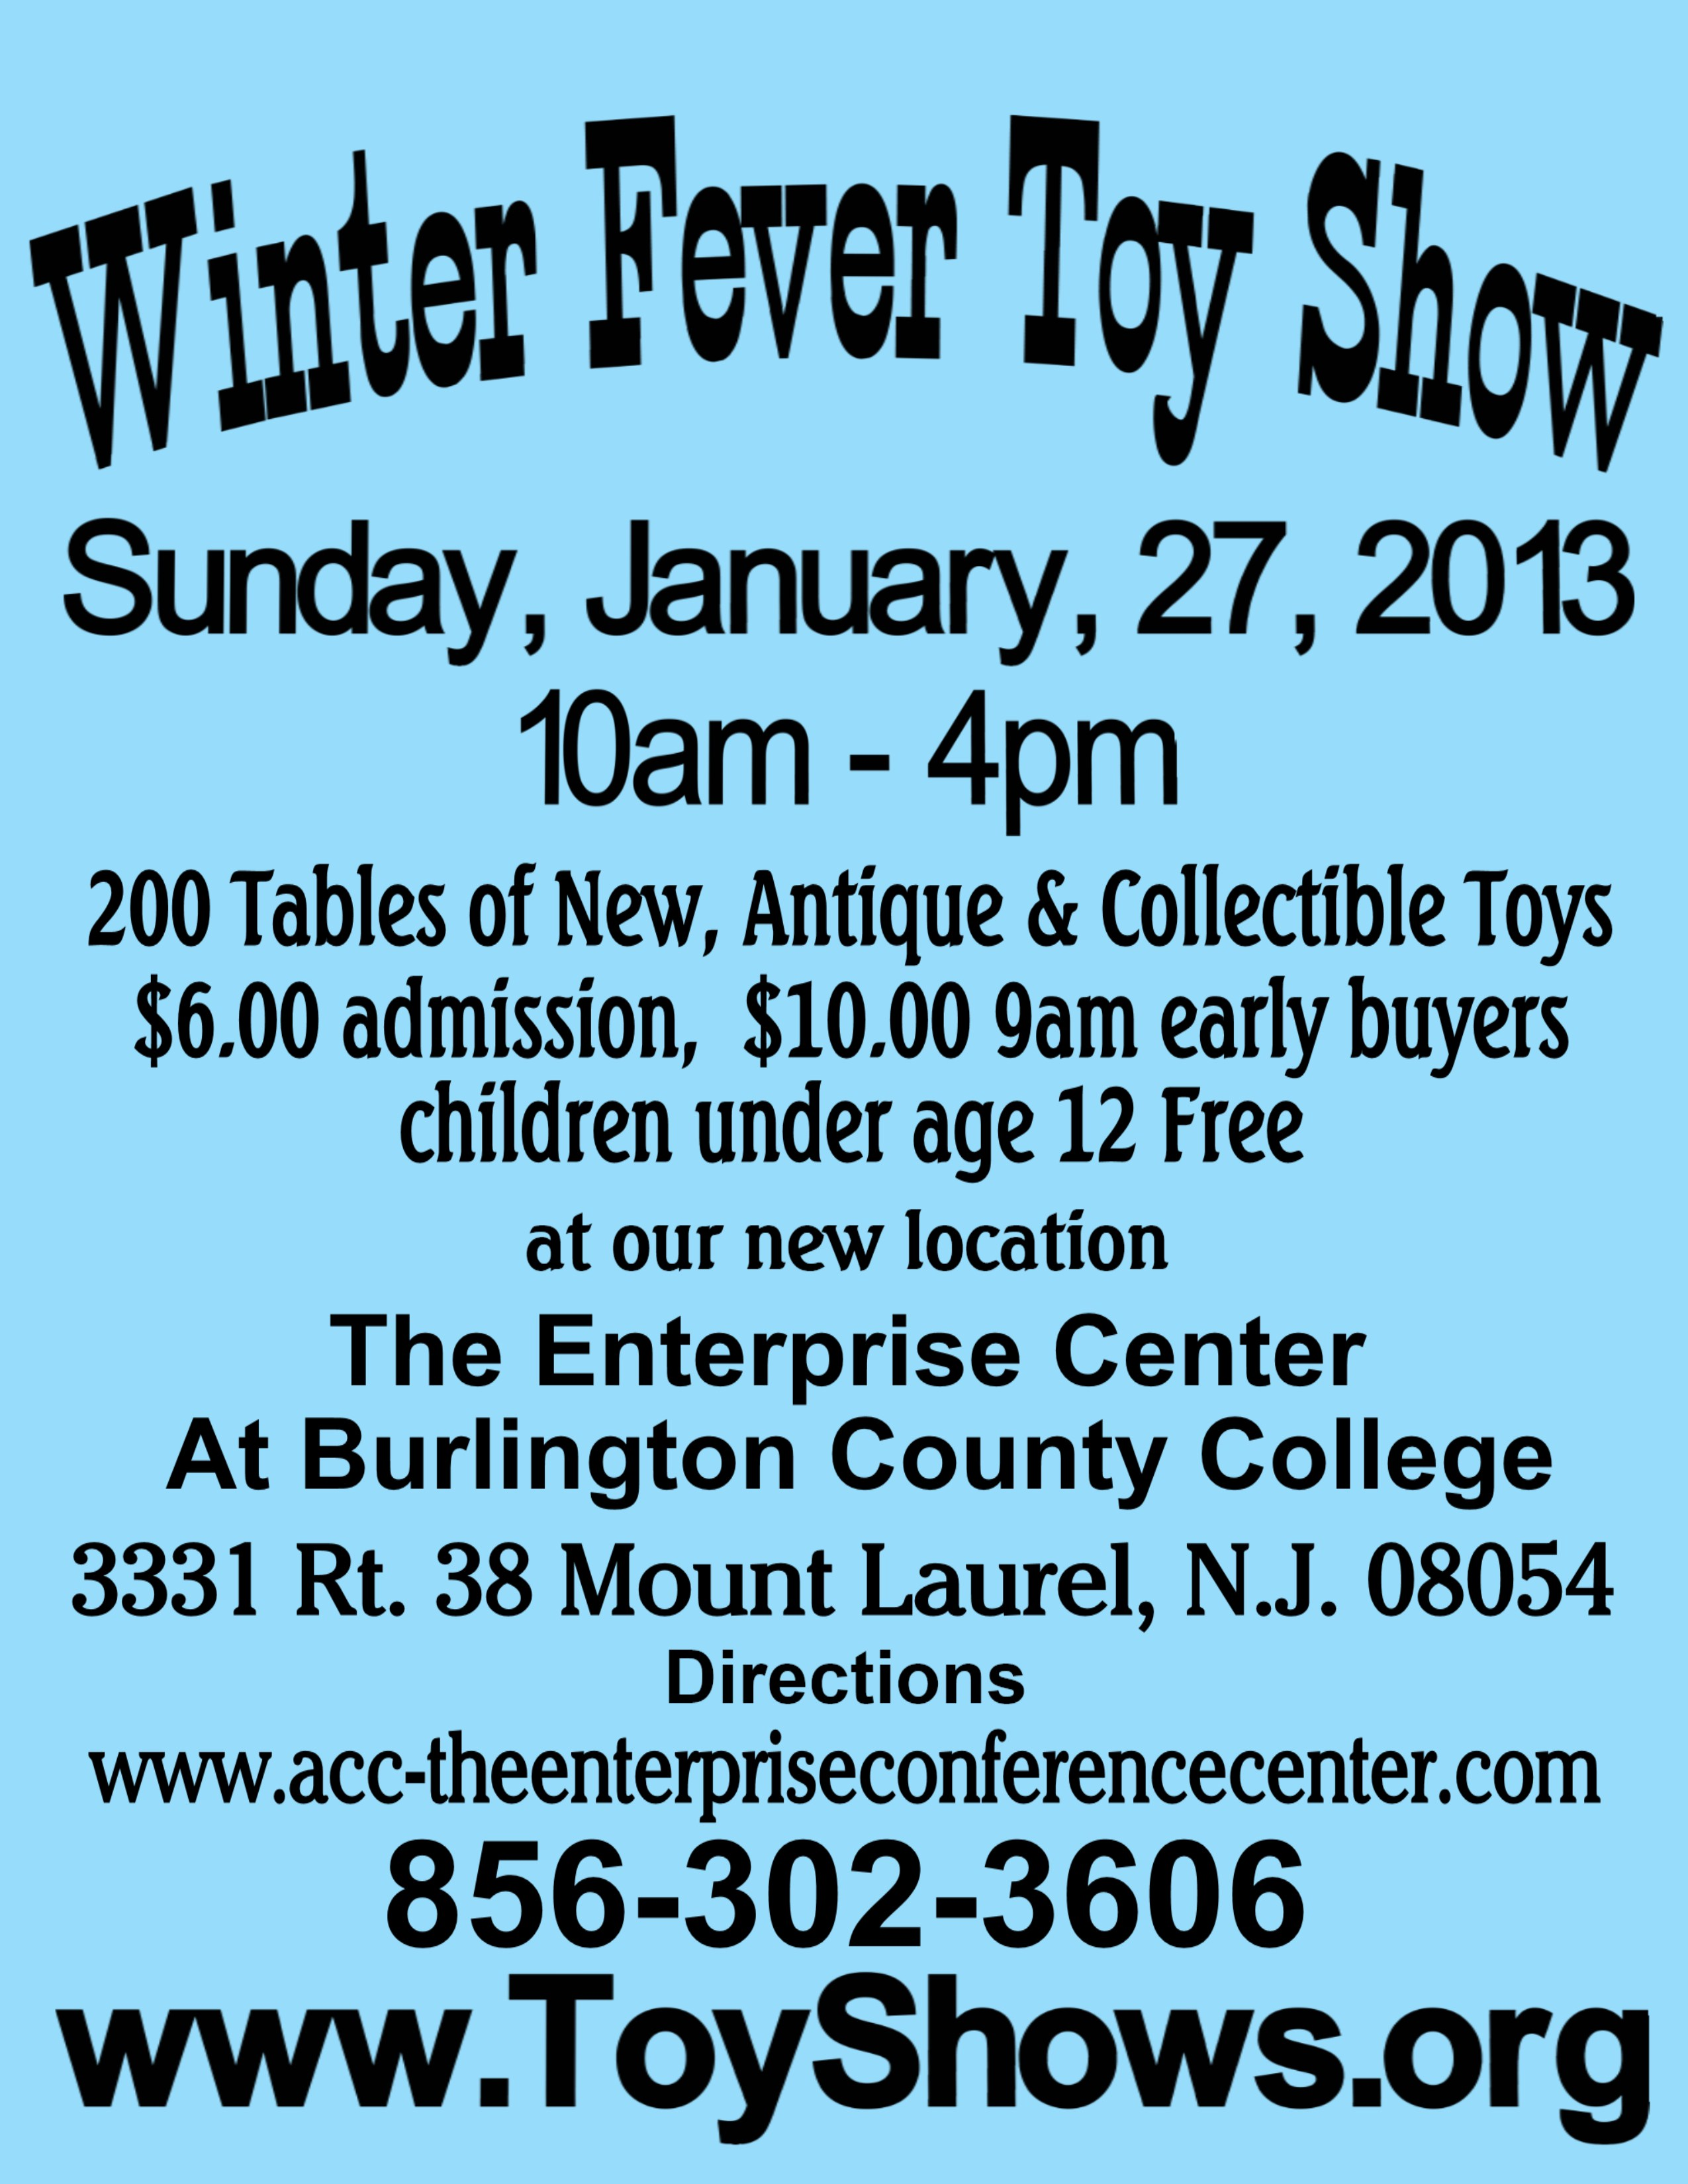 Winter Fever Toy Show 2013 Flyer